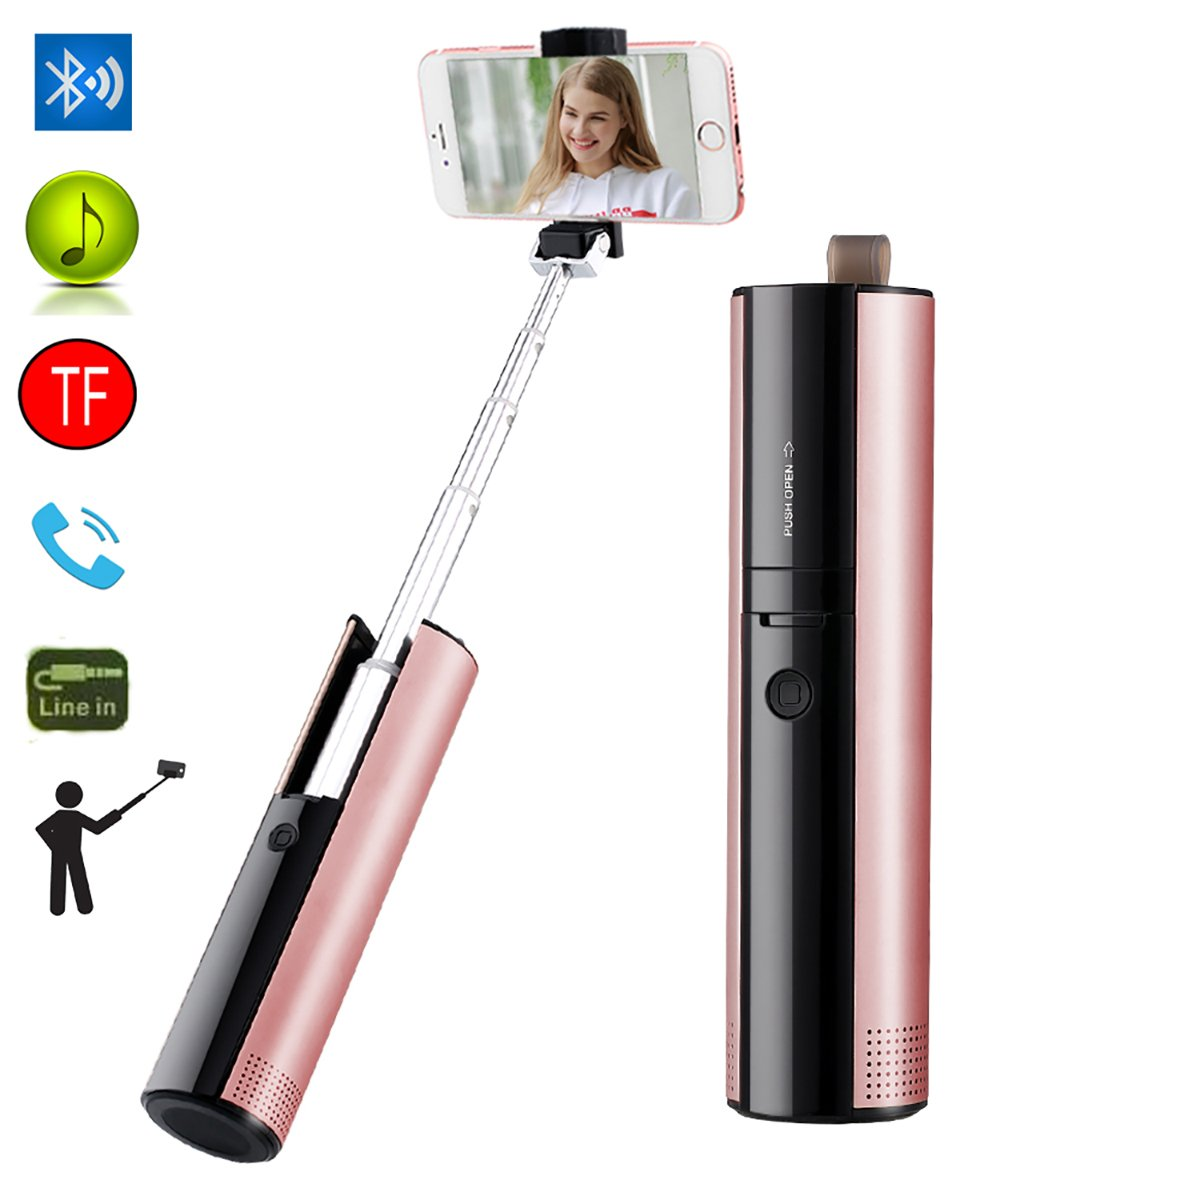 Bluetooth Speakers Selfie Stick CLEVERLOVE Portable Speaker Touch Wireless Stereo Bluetooth for iPhone Android Smart Phones for Outdoor Travel(Rose Gold)